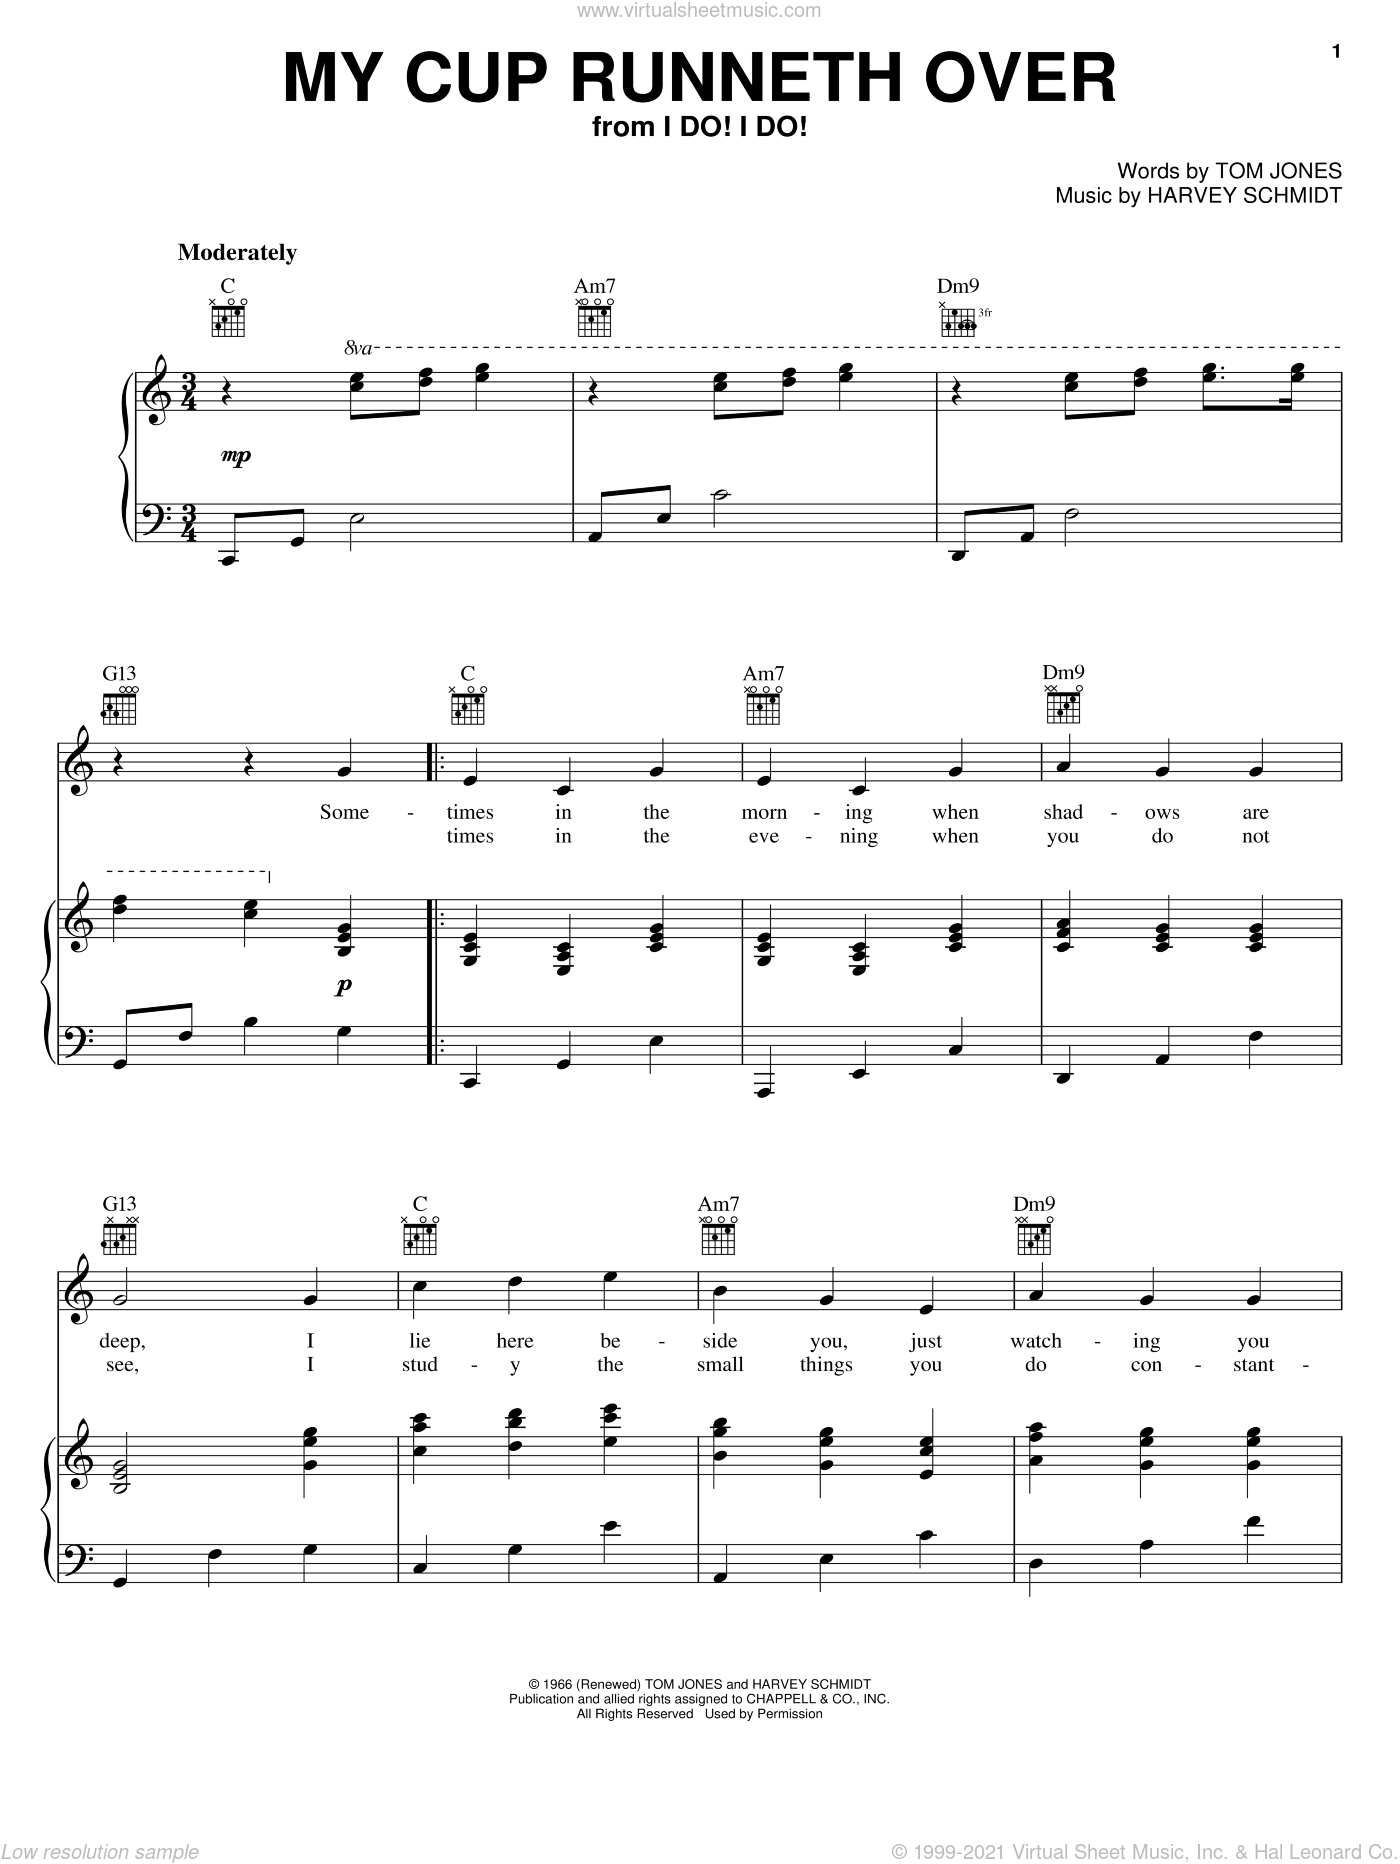 My Cup Runneth Over sheet music for voice, piano or guitar by Tom Jones